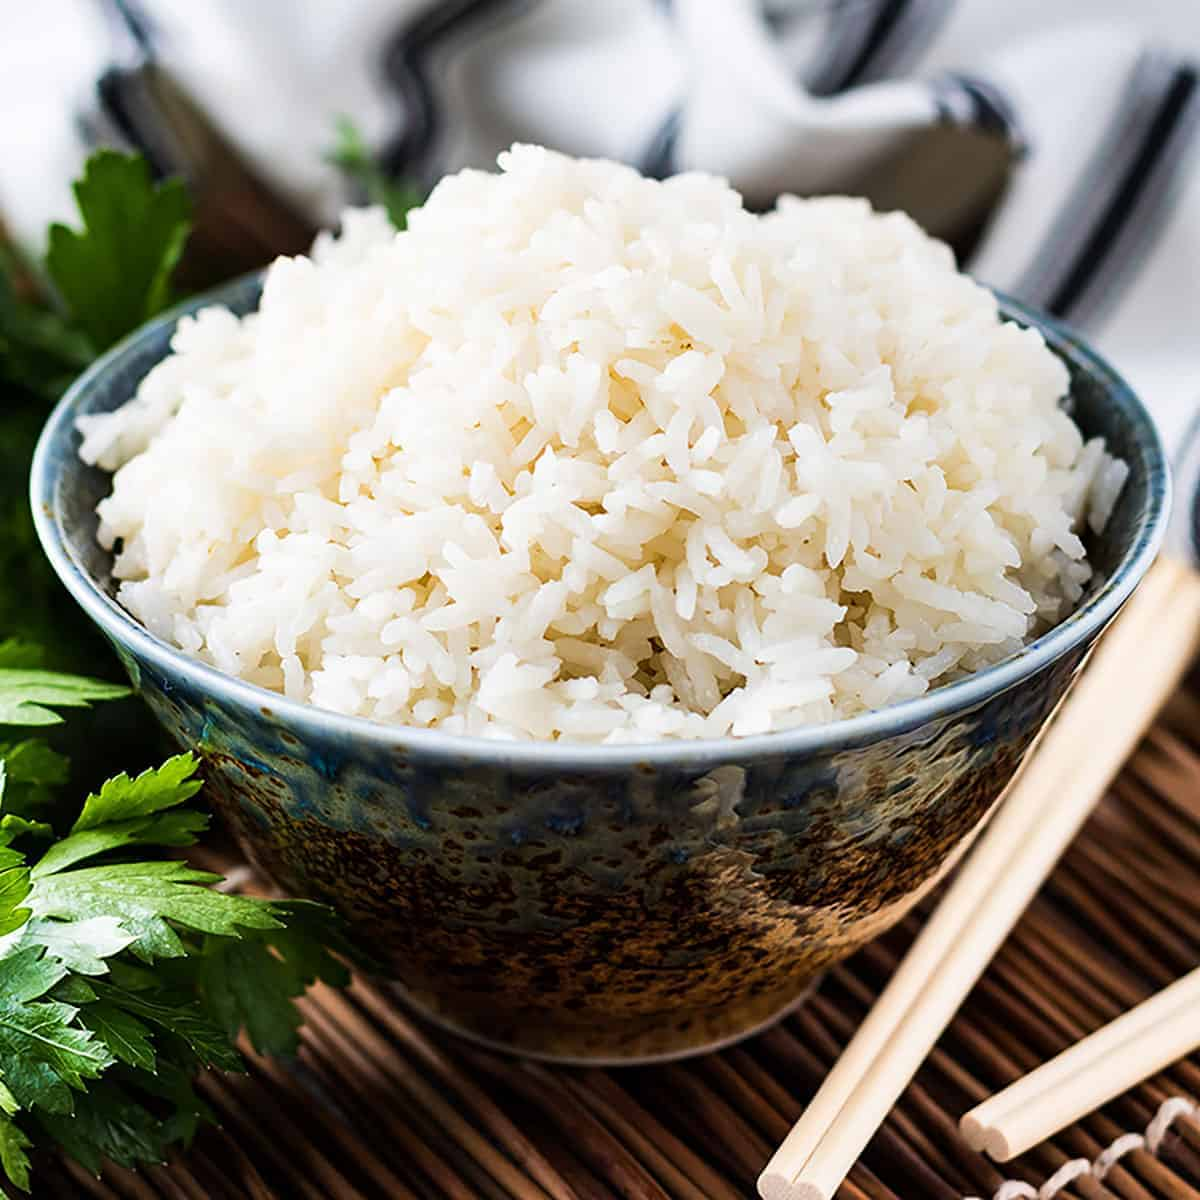 Bowl of Instant Pot coconut rice next to chop sticks.